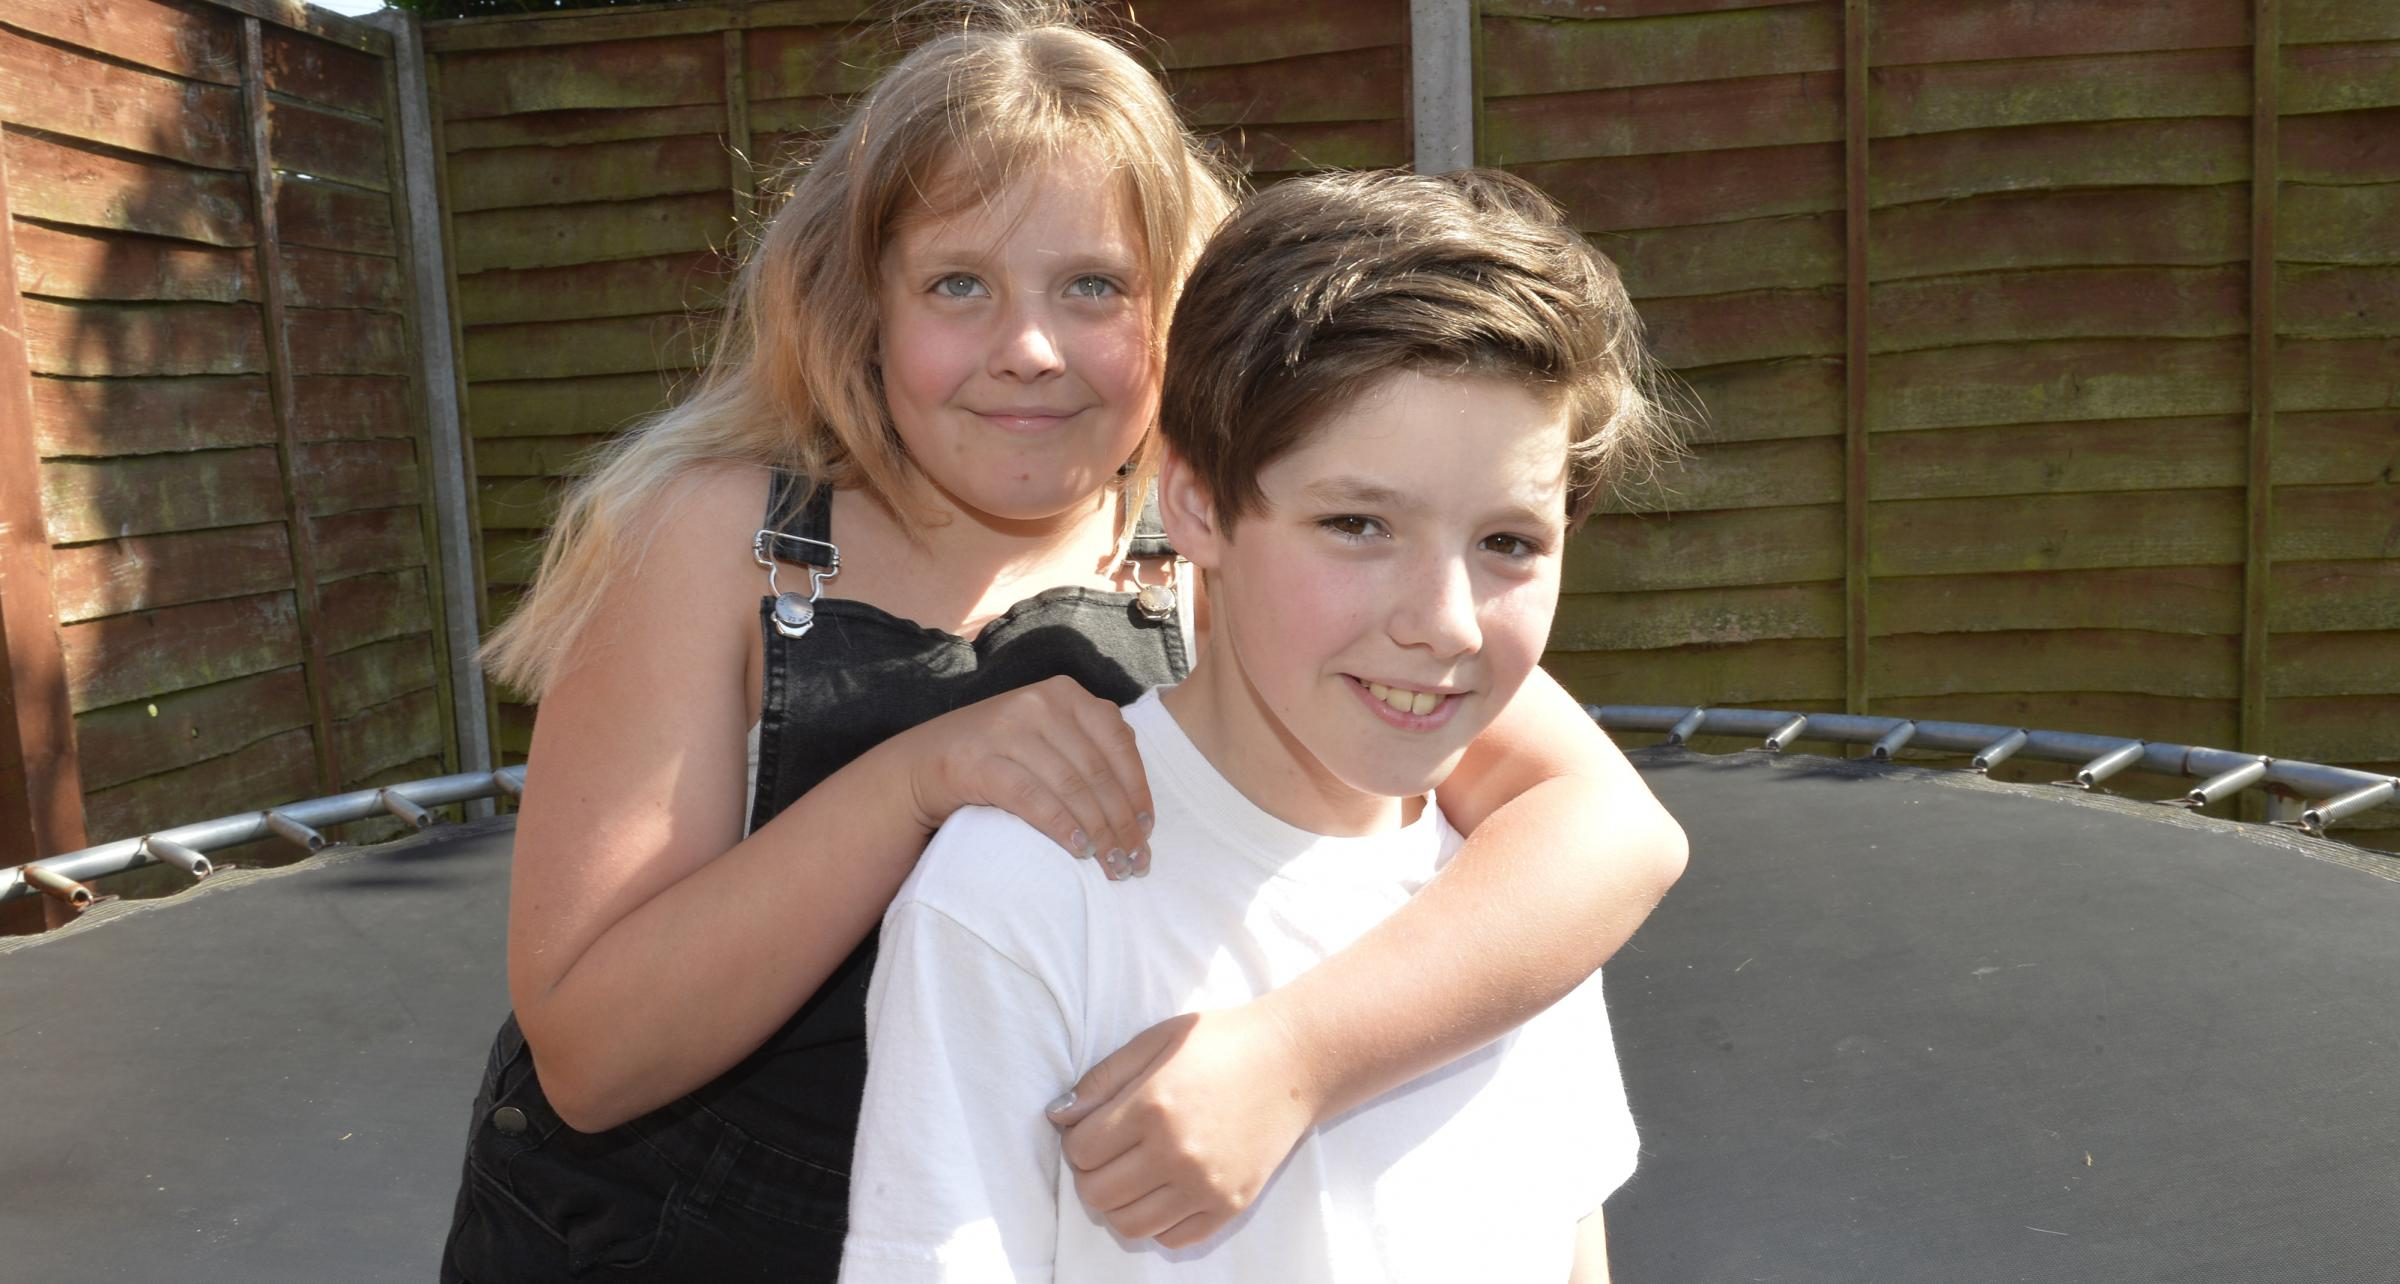 Kai Plant, 12, who will be in a tv show, pictured at home in Colchester with sister Calleigh, 10..